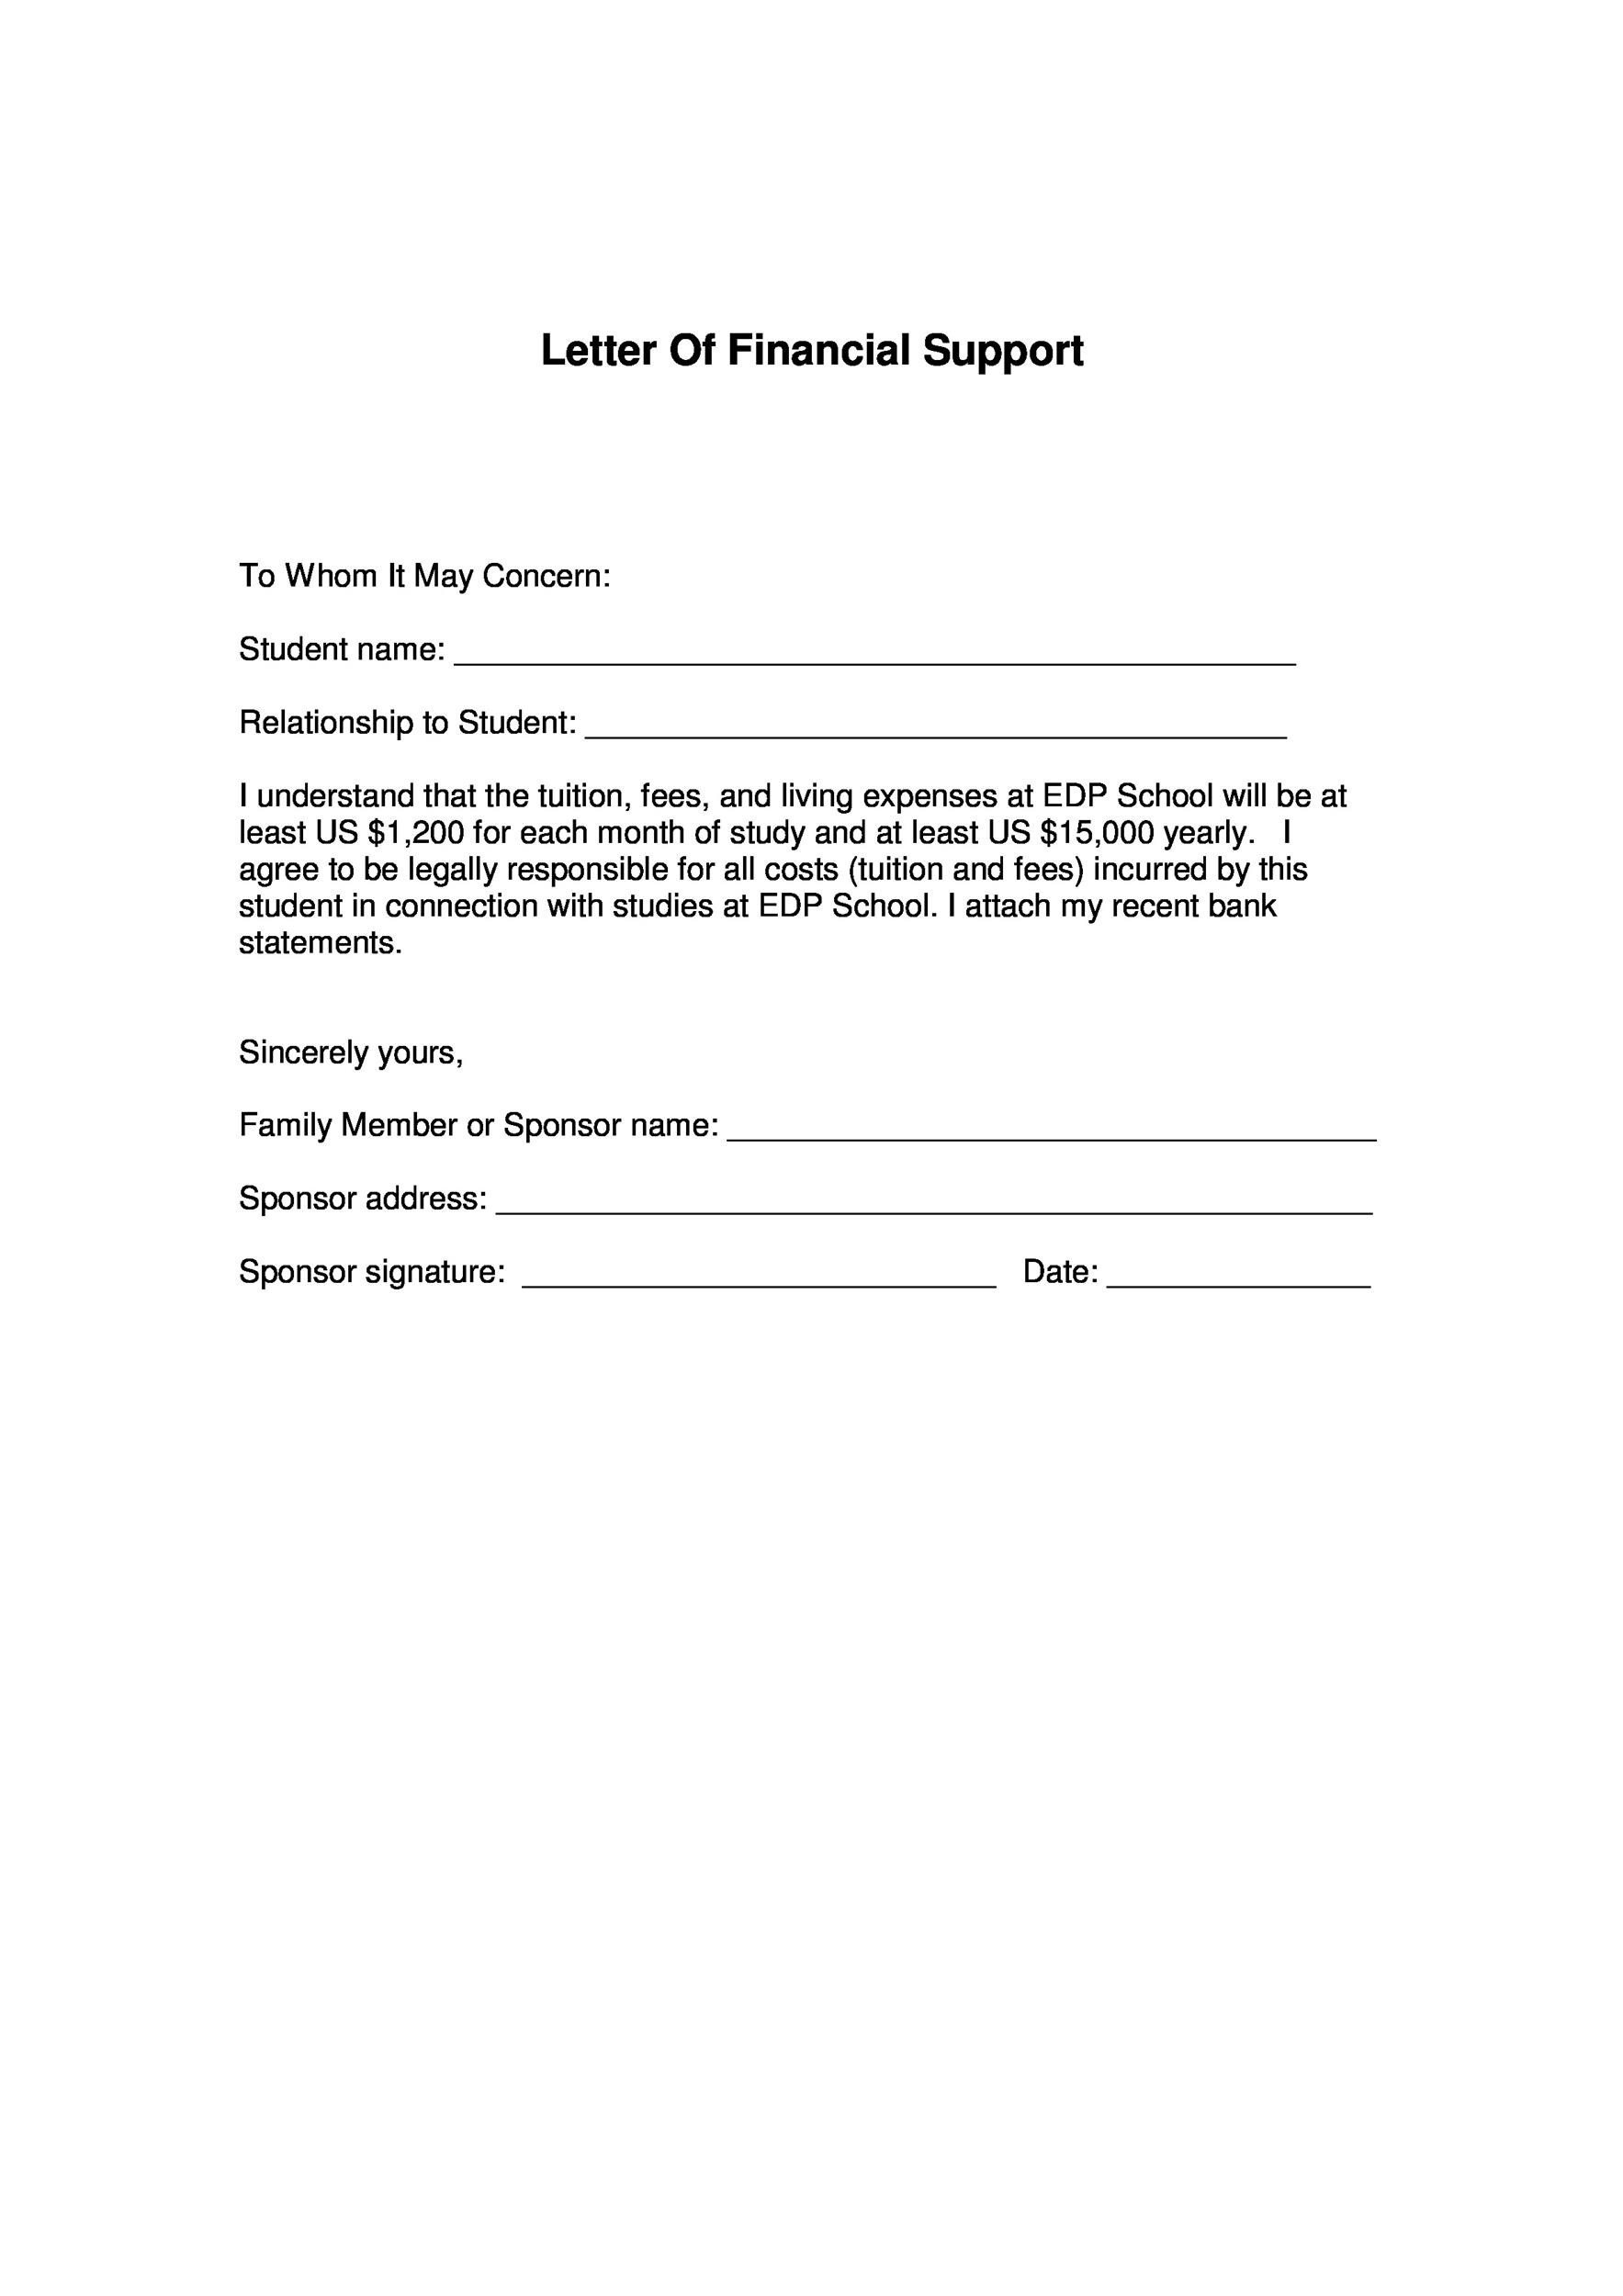 40  proven letter of support templates  financial  for